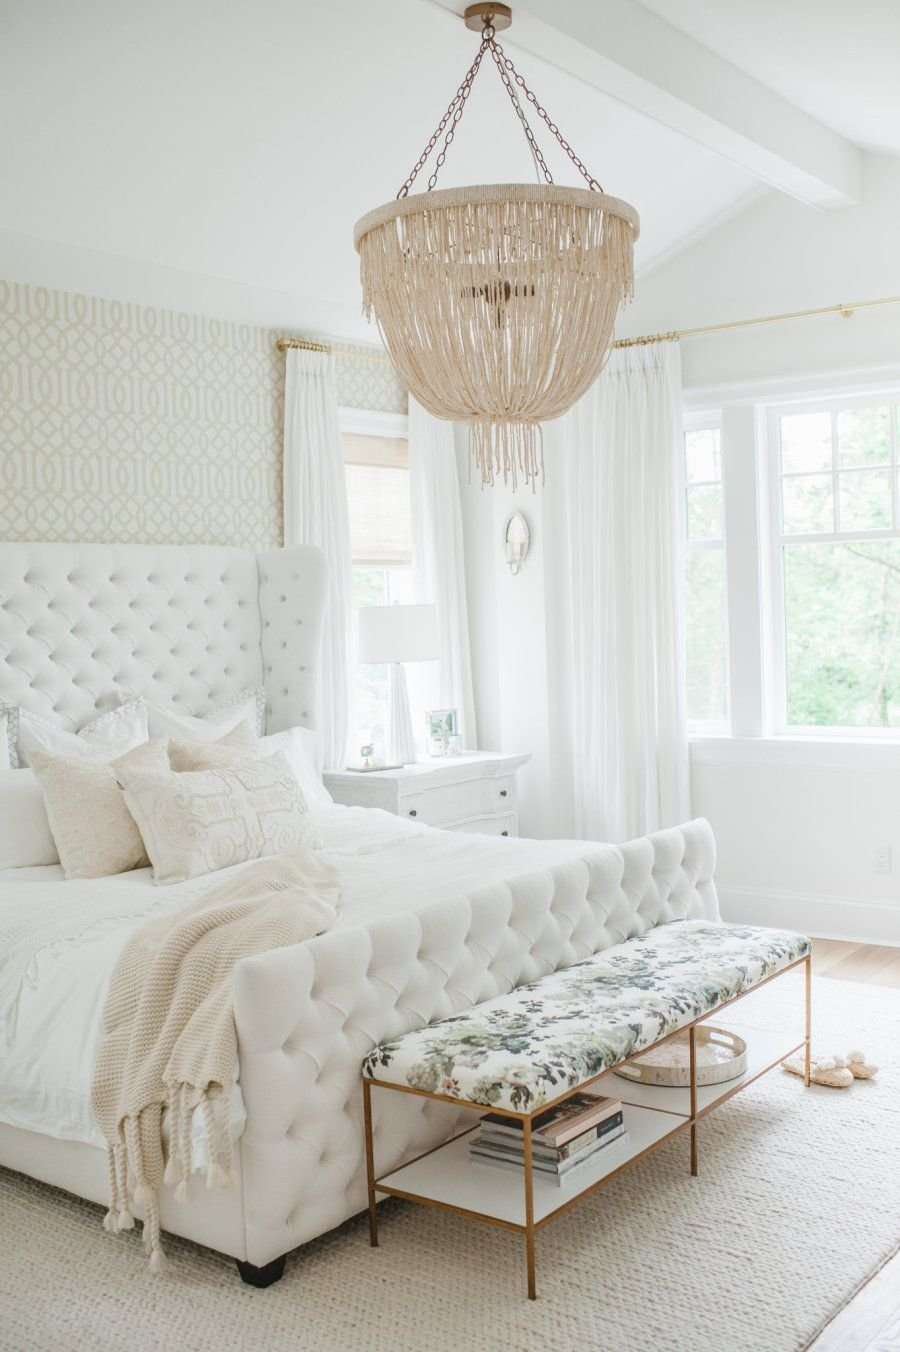 Best The 25 Best White Bedroom Ideas On Pinterest White With Pictures